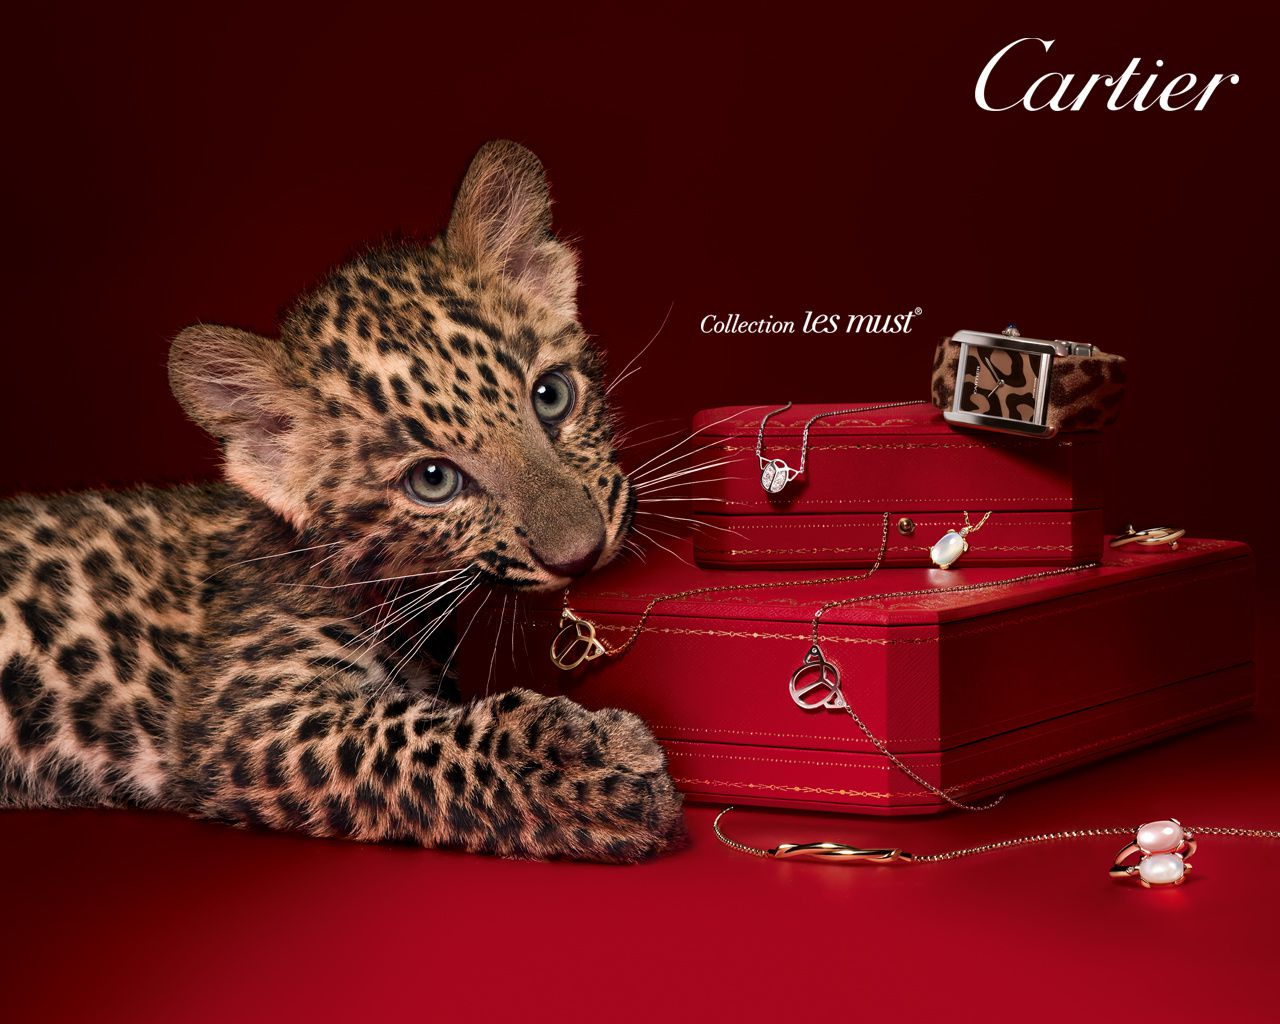 Cartier - Panthère - Wallpapers - HD - Free